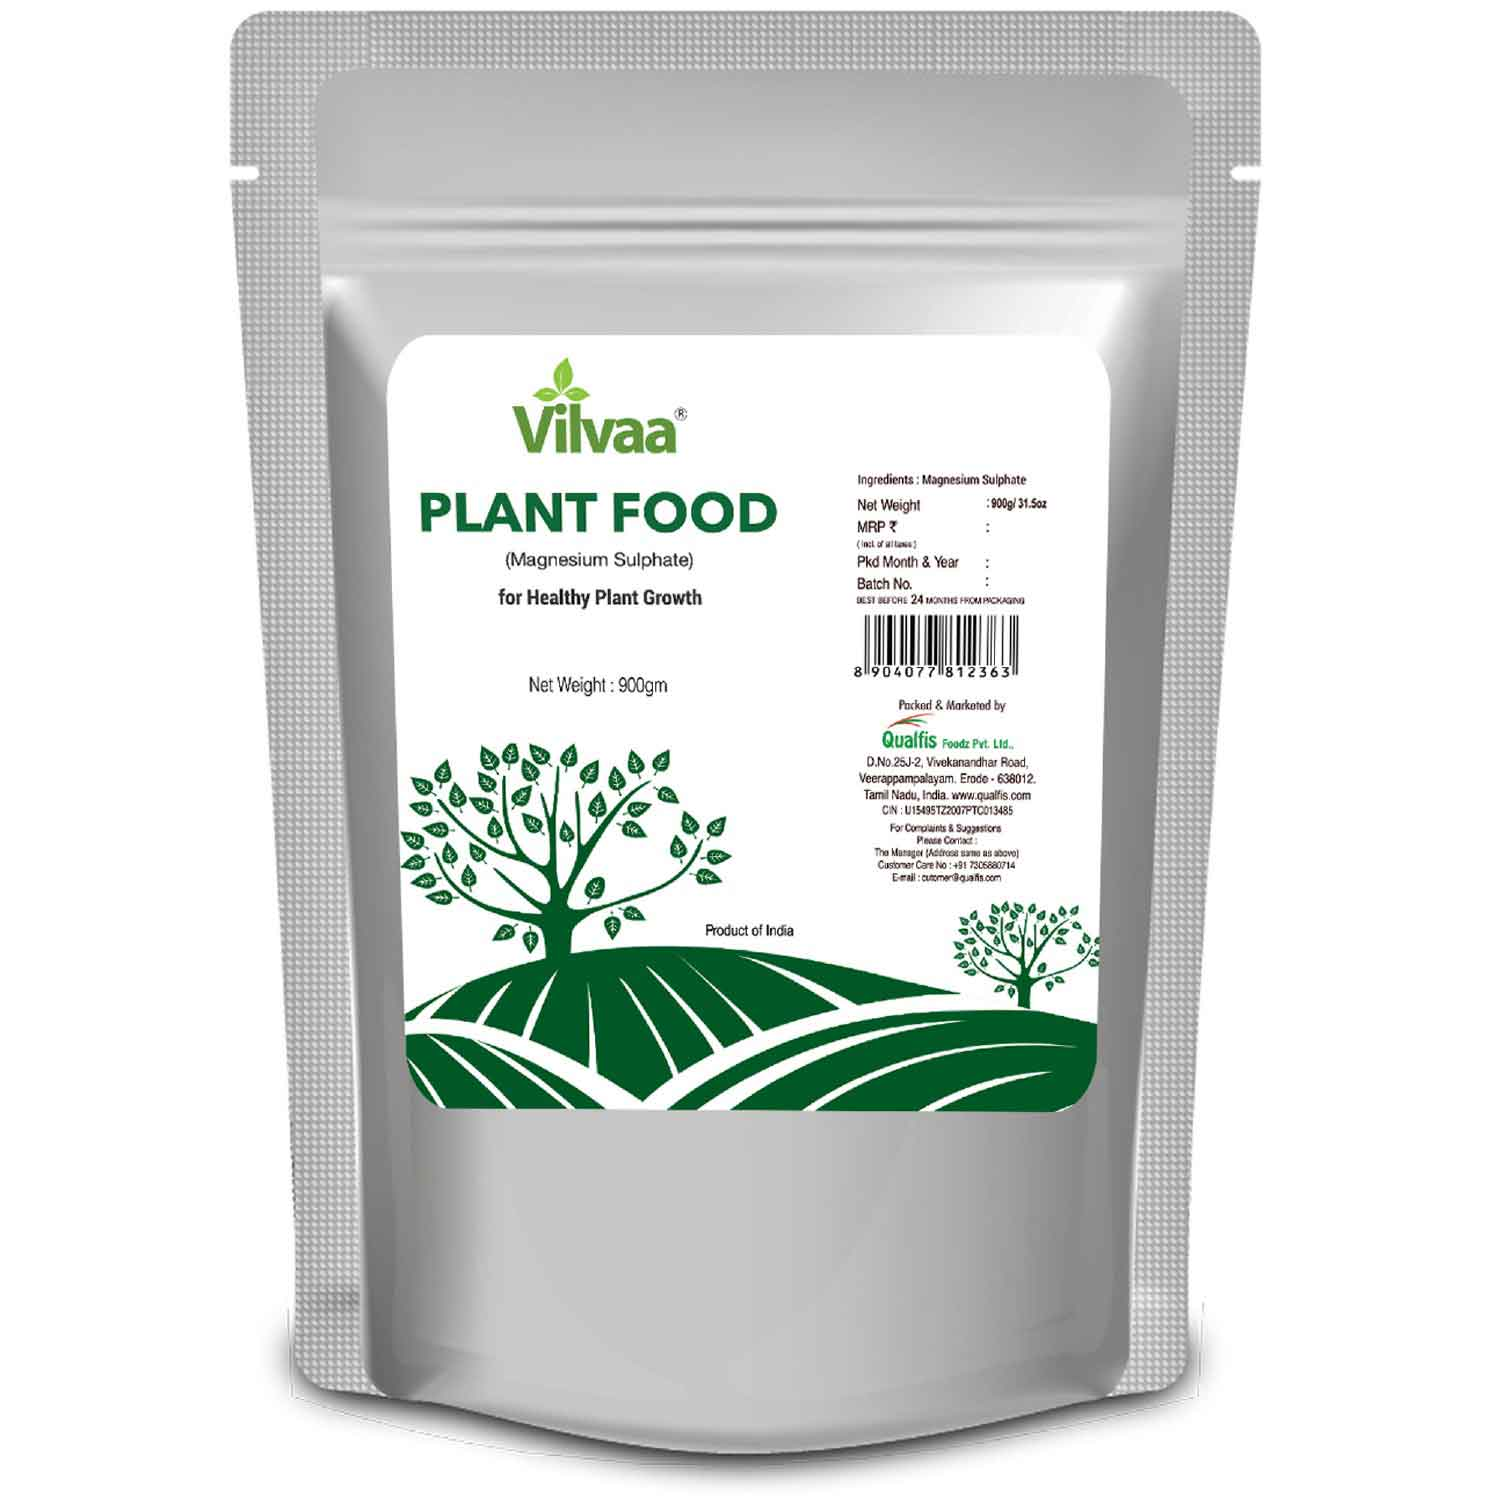 Plant Food ( Magnesium Sulphate ) 900g - For Healthy Plant Growth